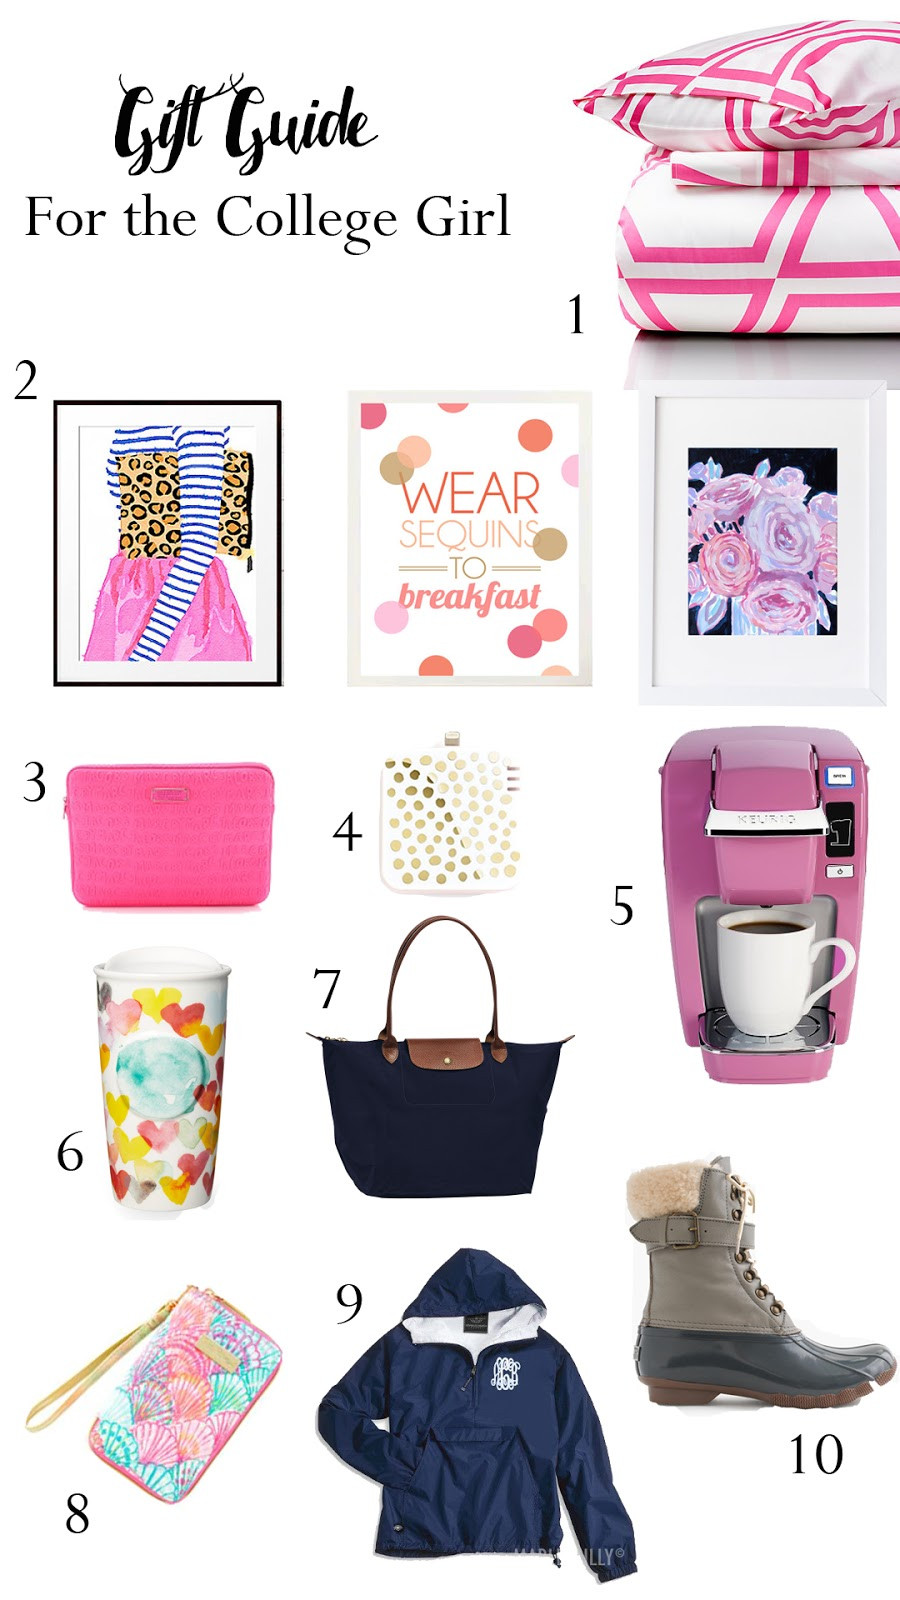 College Girlfriend Gift Ideas  Gift Guide For the College Girl